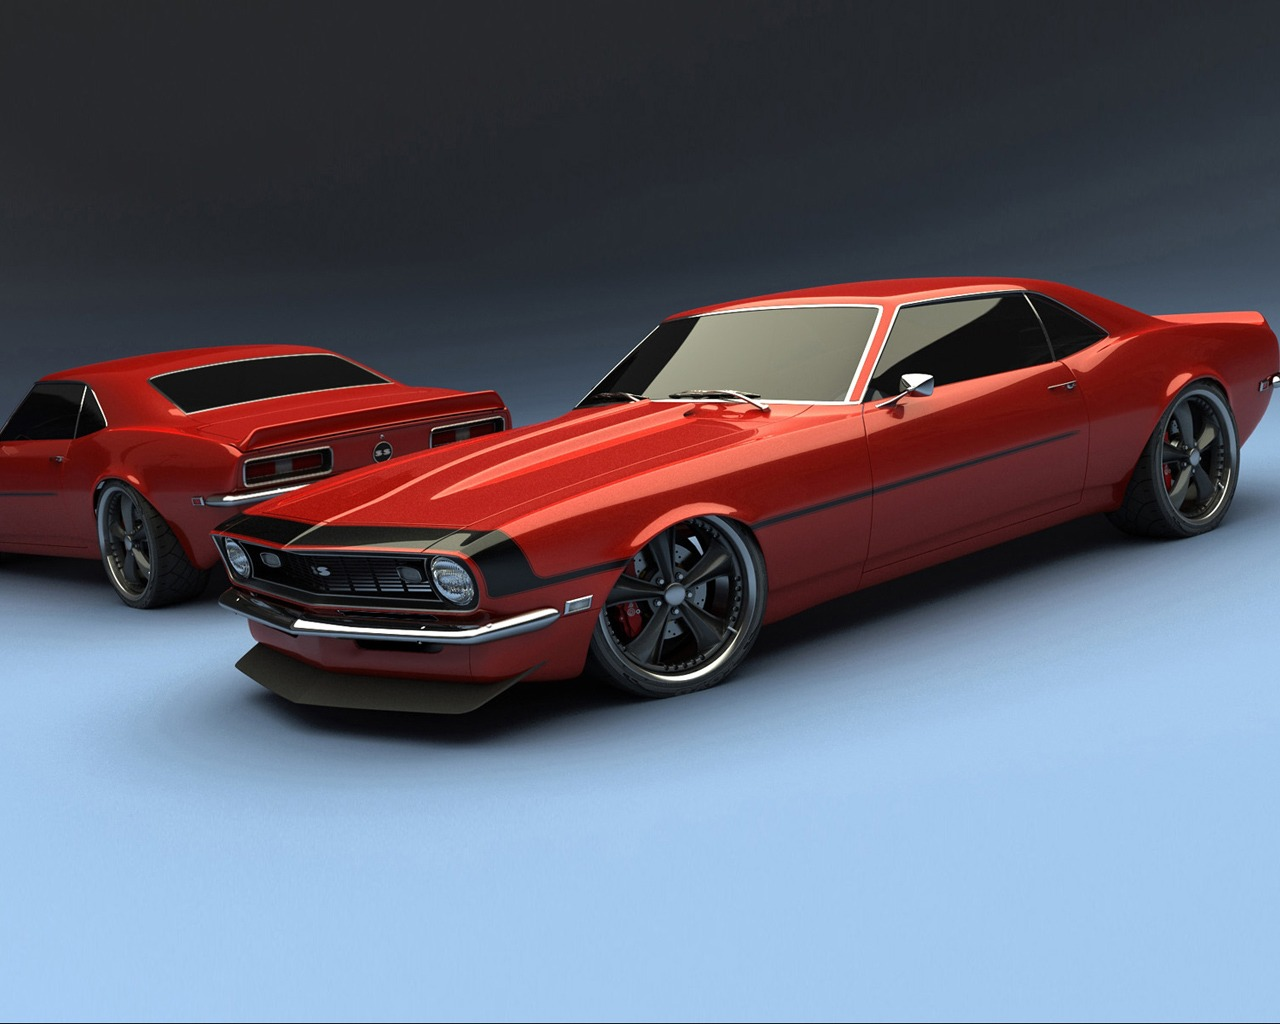 Chevrolet camaro ss wallpaper chevrolet cars wallpapers in - Free camaro wallpaper download ...